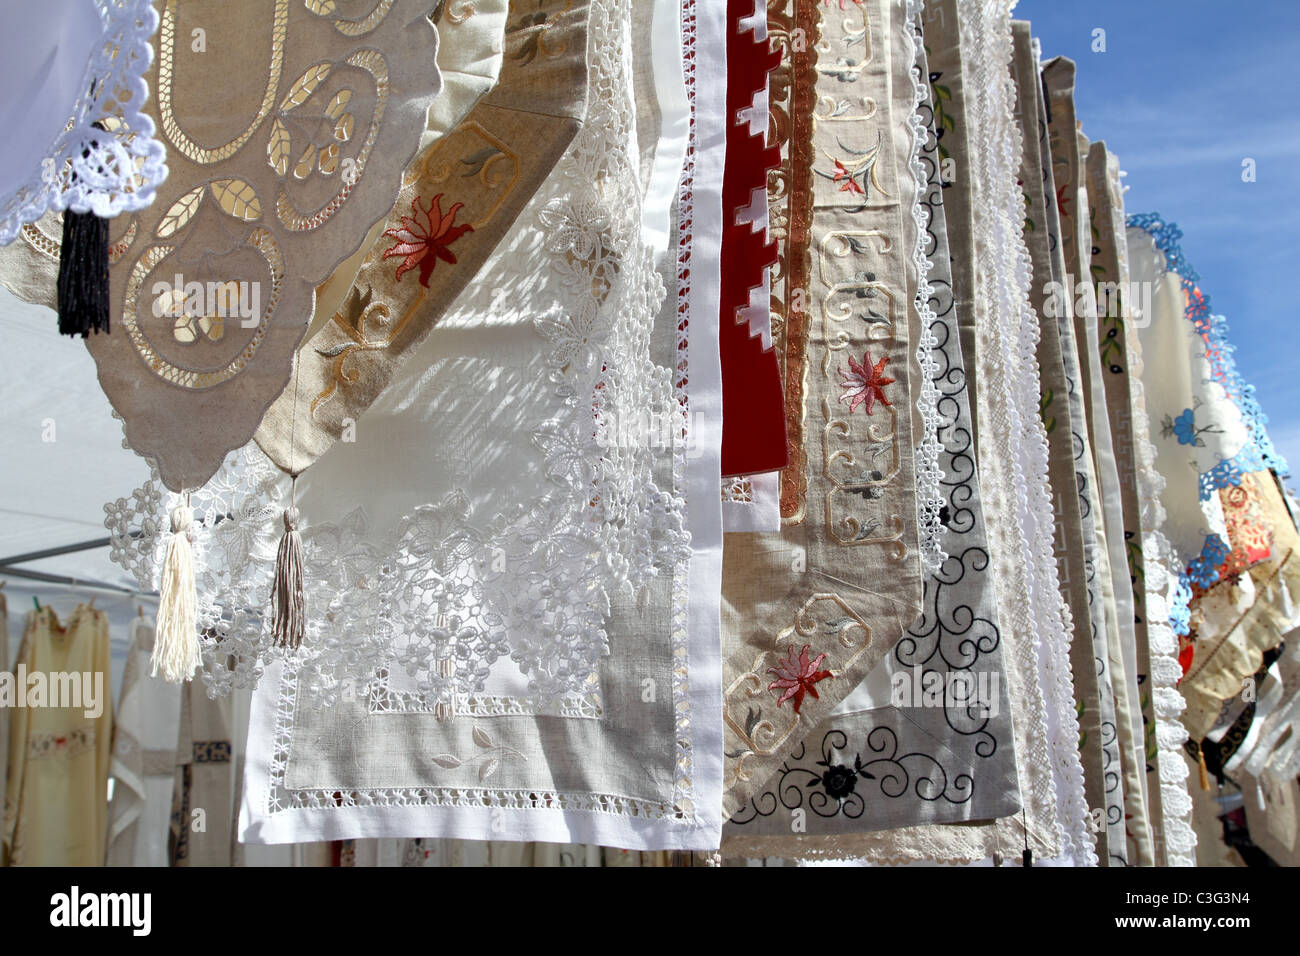 fabric embroidery tablecloths mediterranean in a row - Stock Image